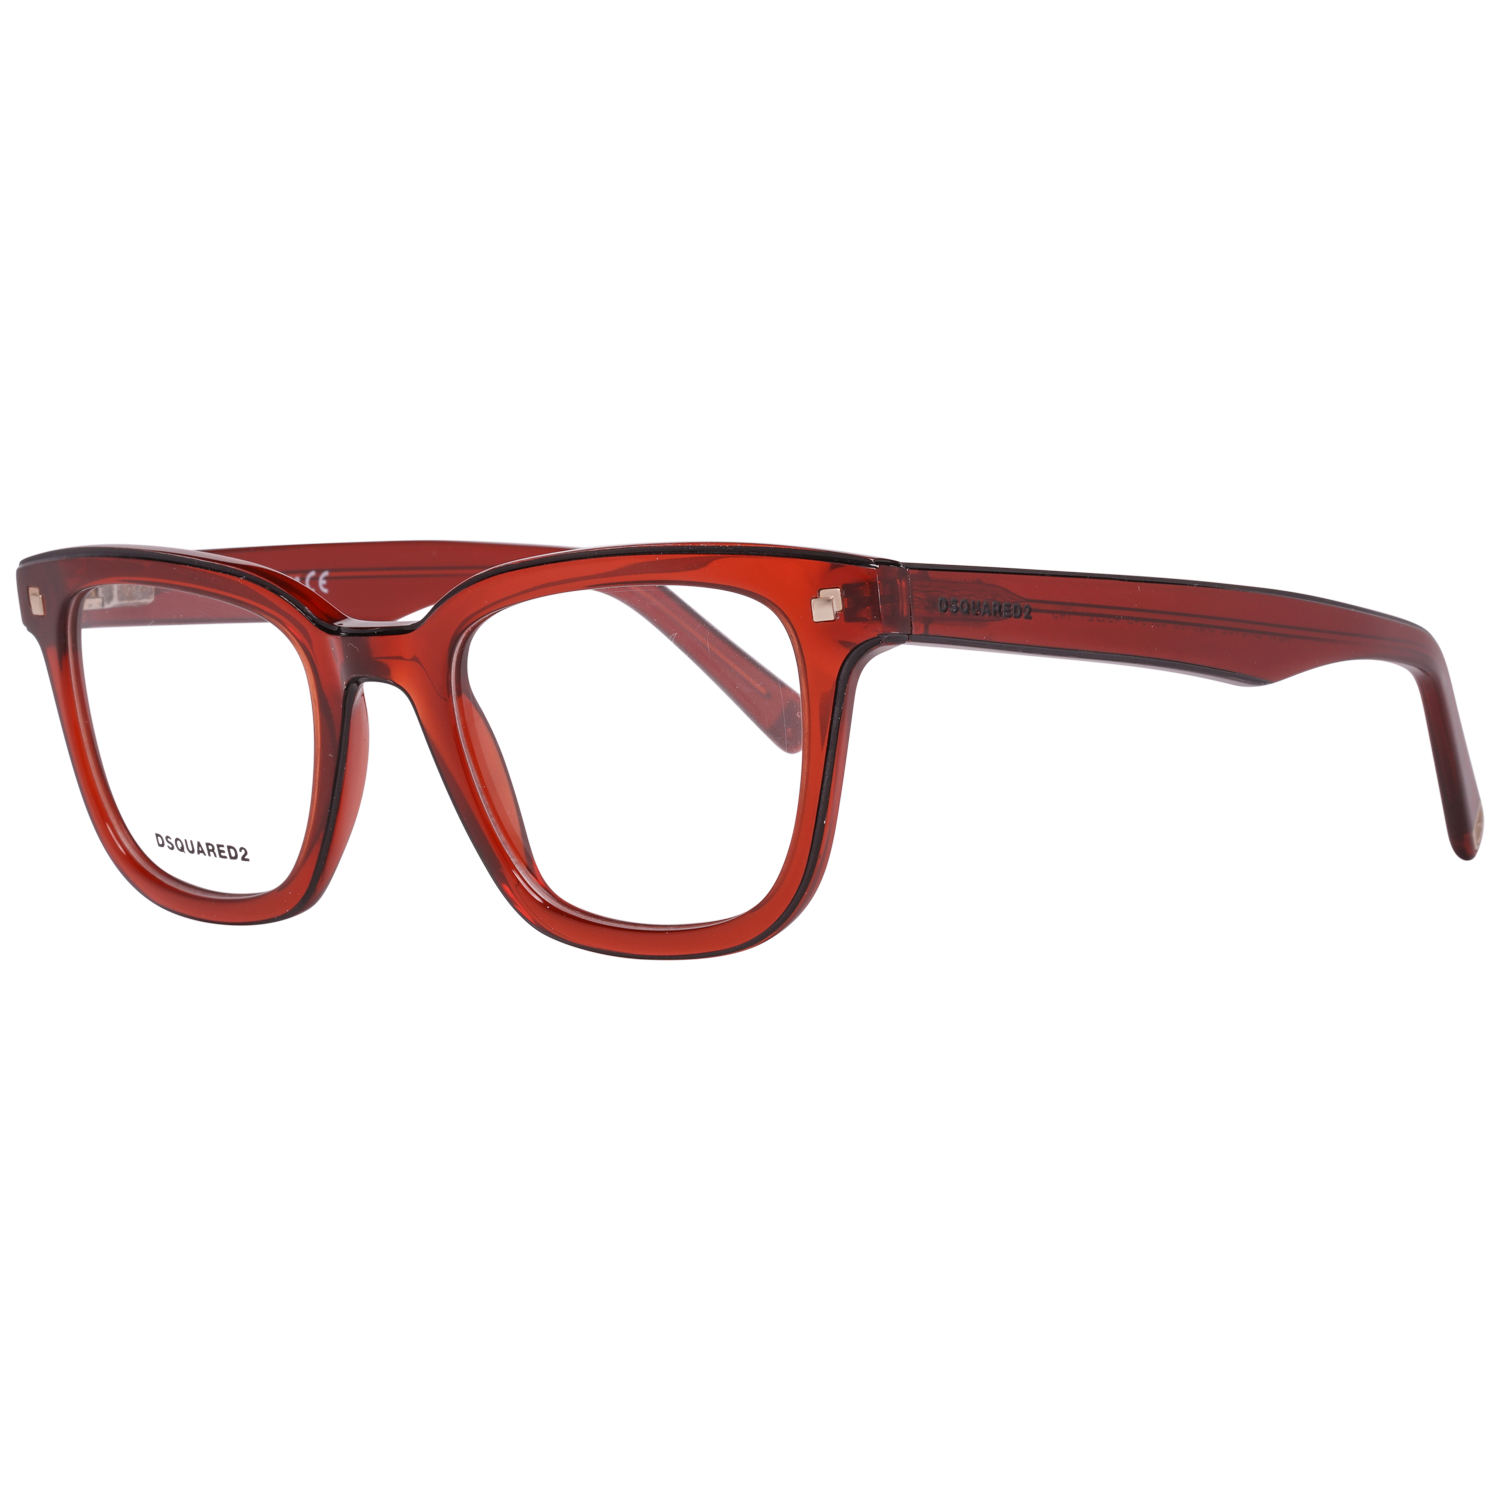 Dsquared2 Optical Frame DQ5165 045 49 Red